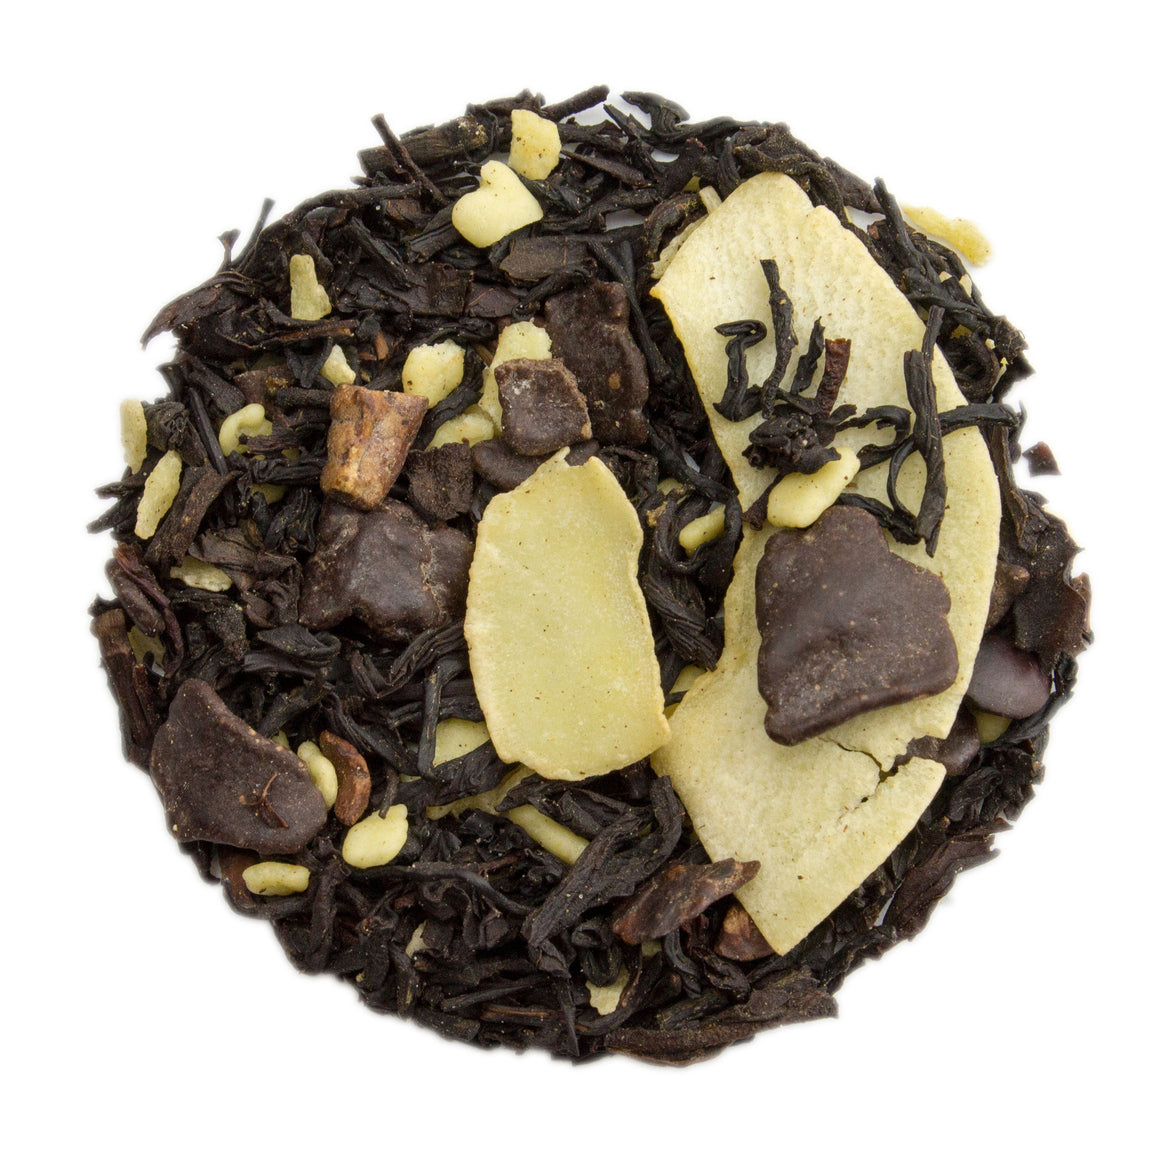 Chocolate and Coconut Tea